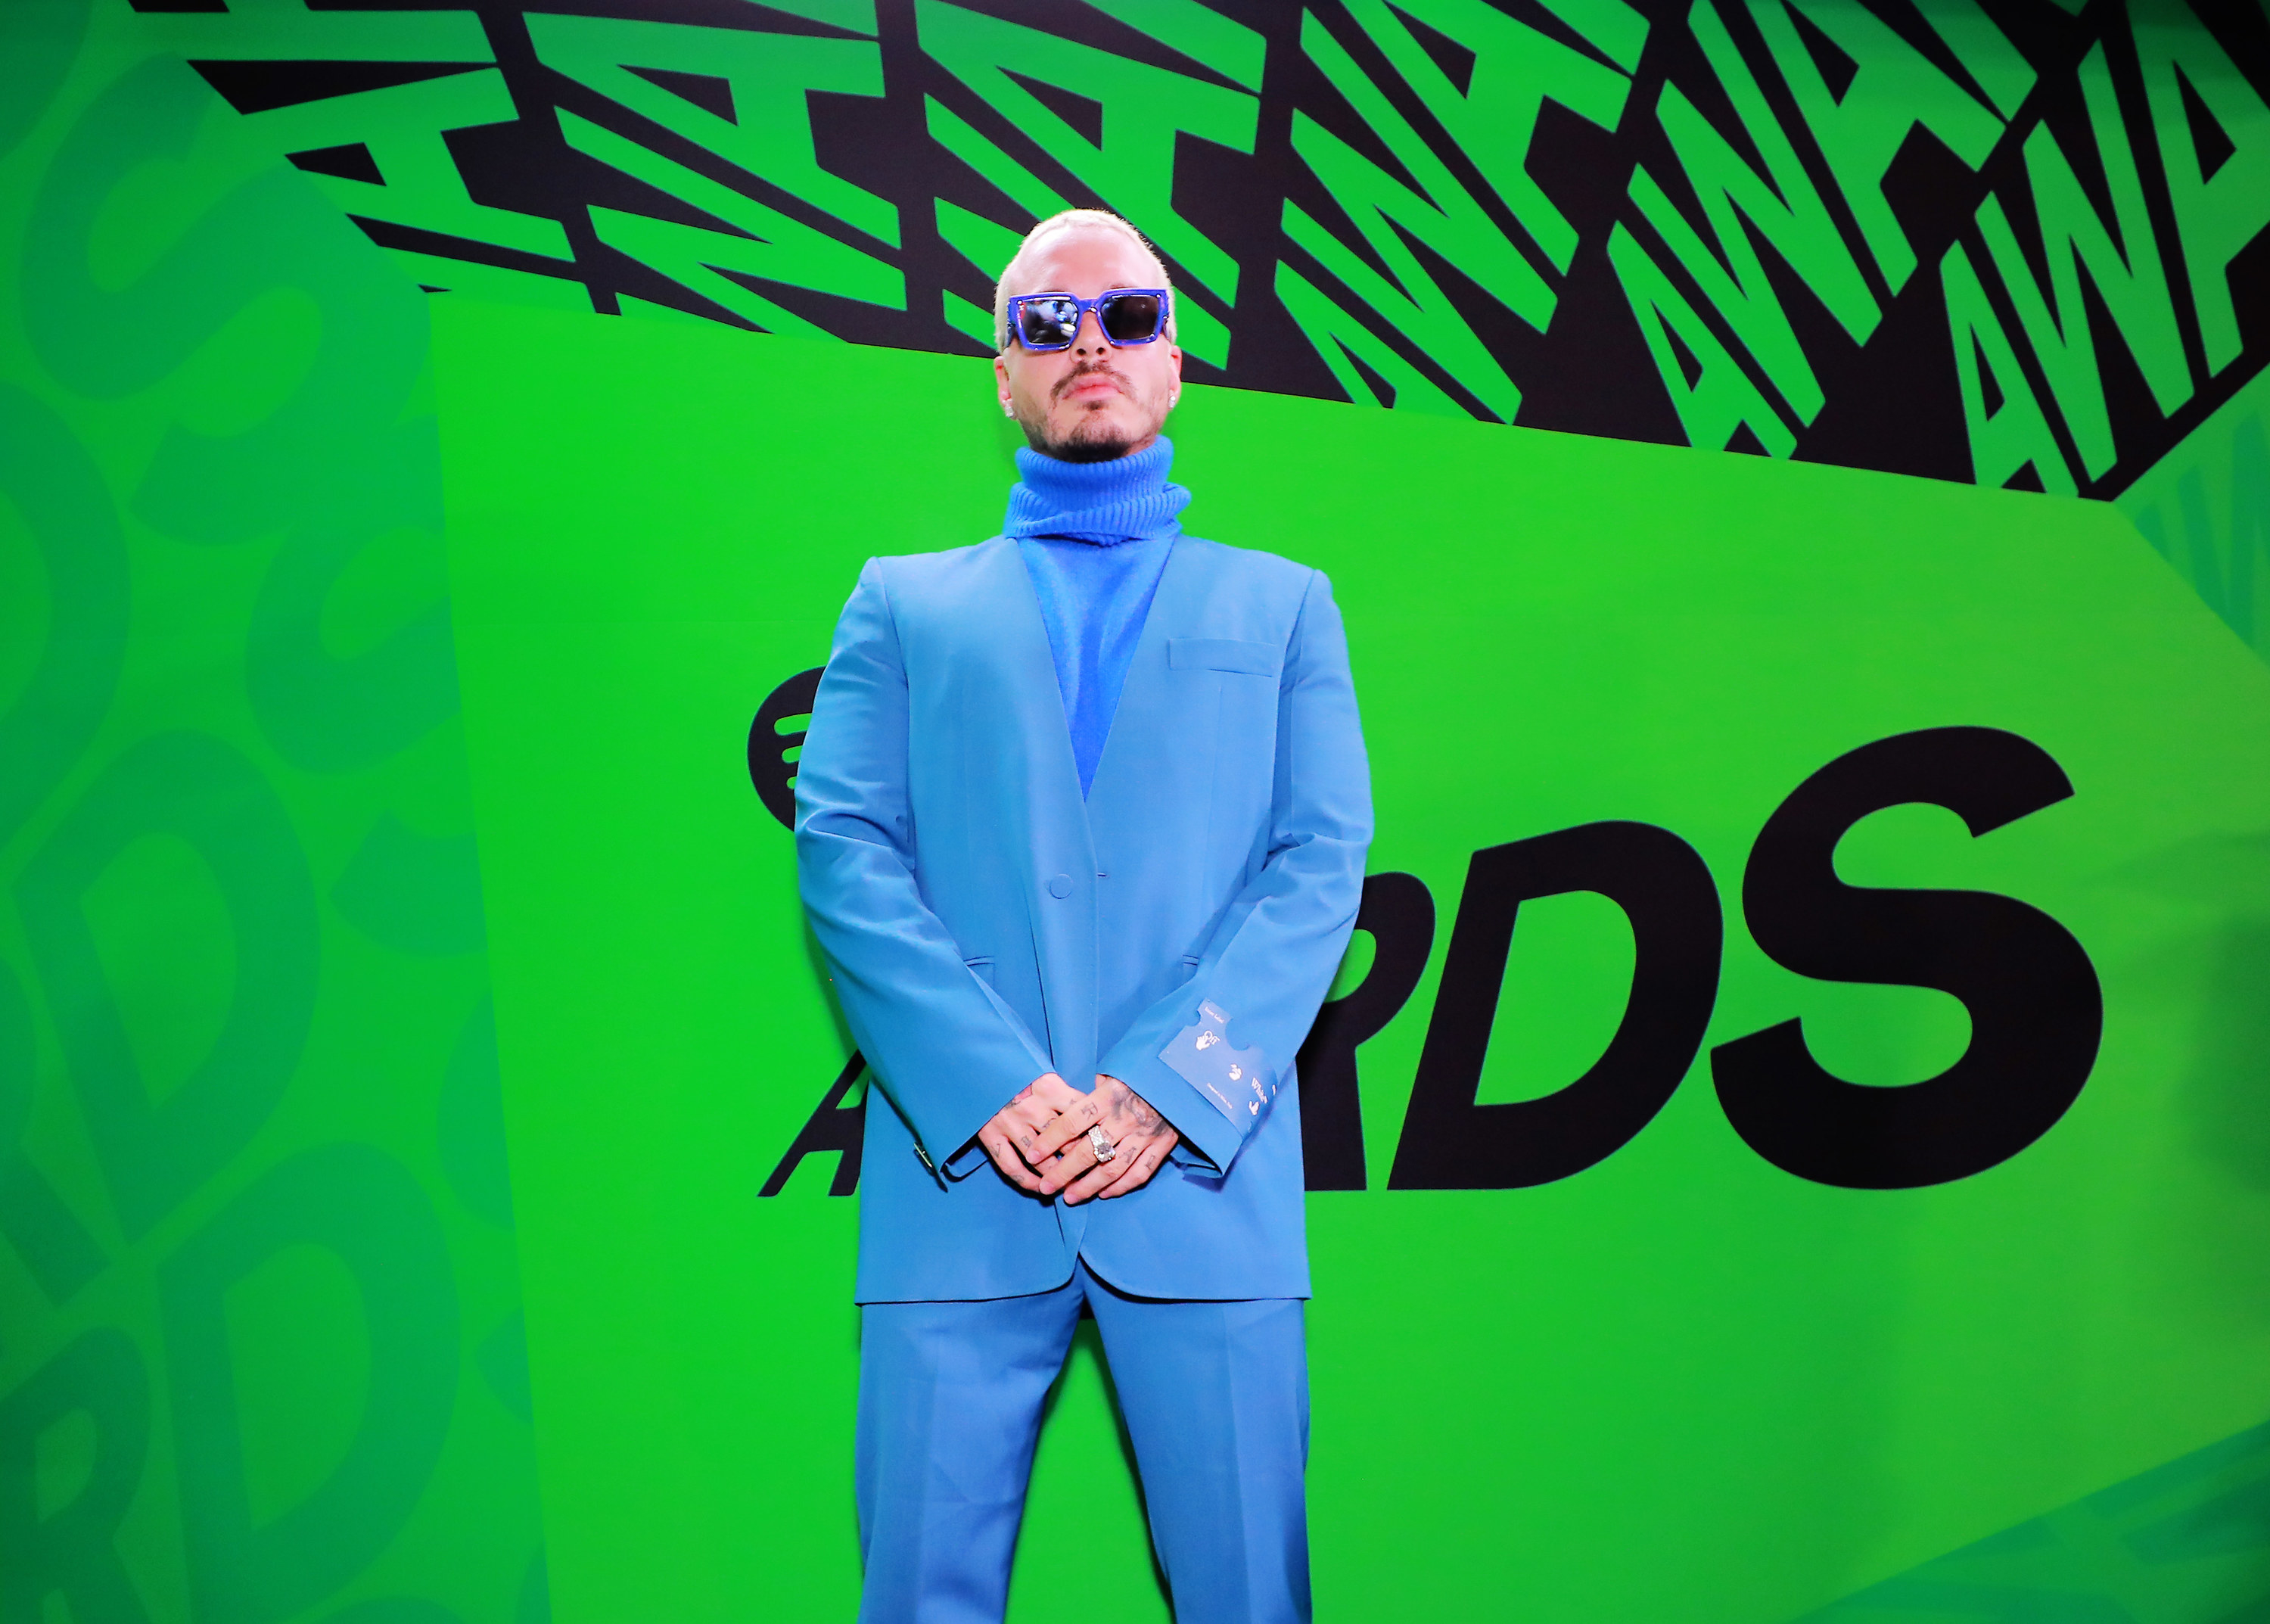 J Balvin posing in a suit and matching turtle neck at the 2020 Spotify Awards